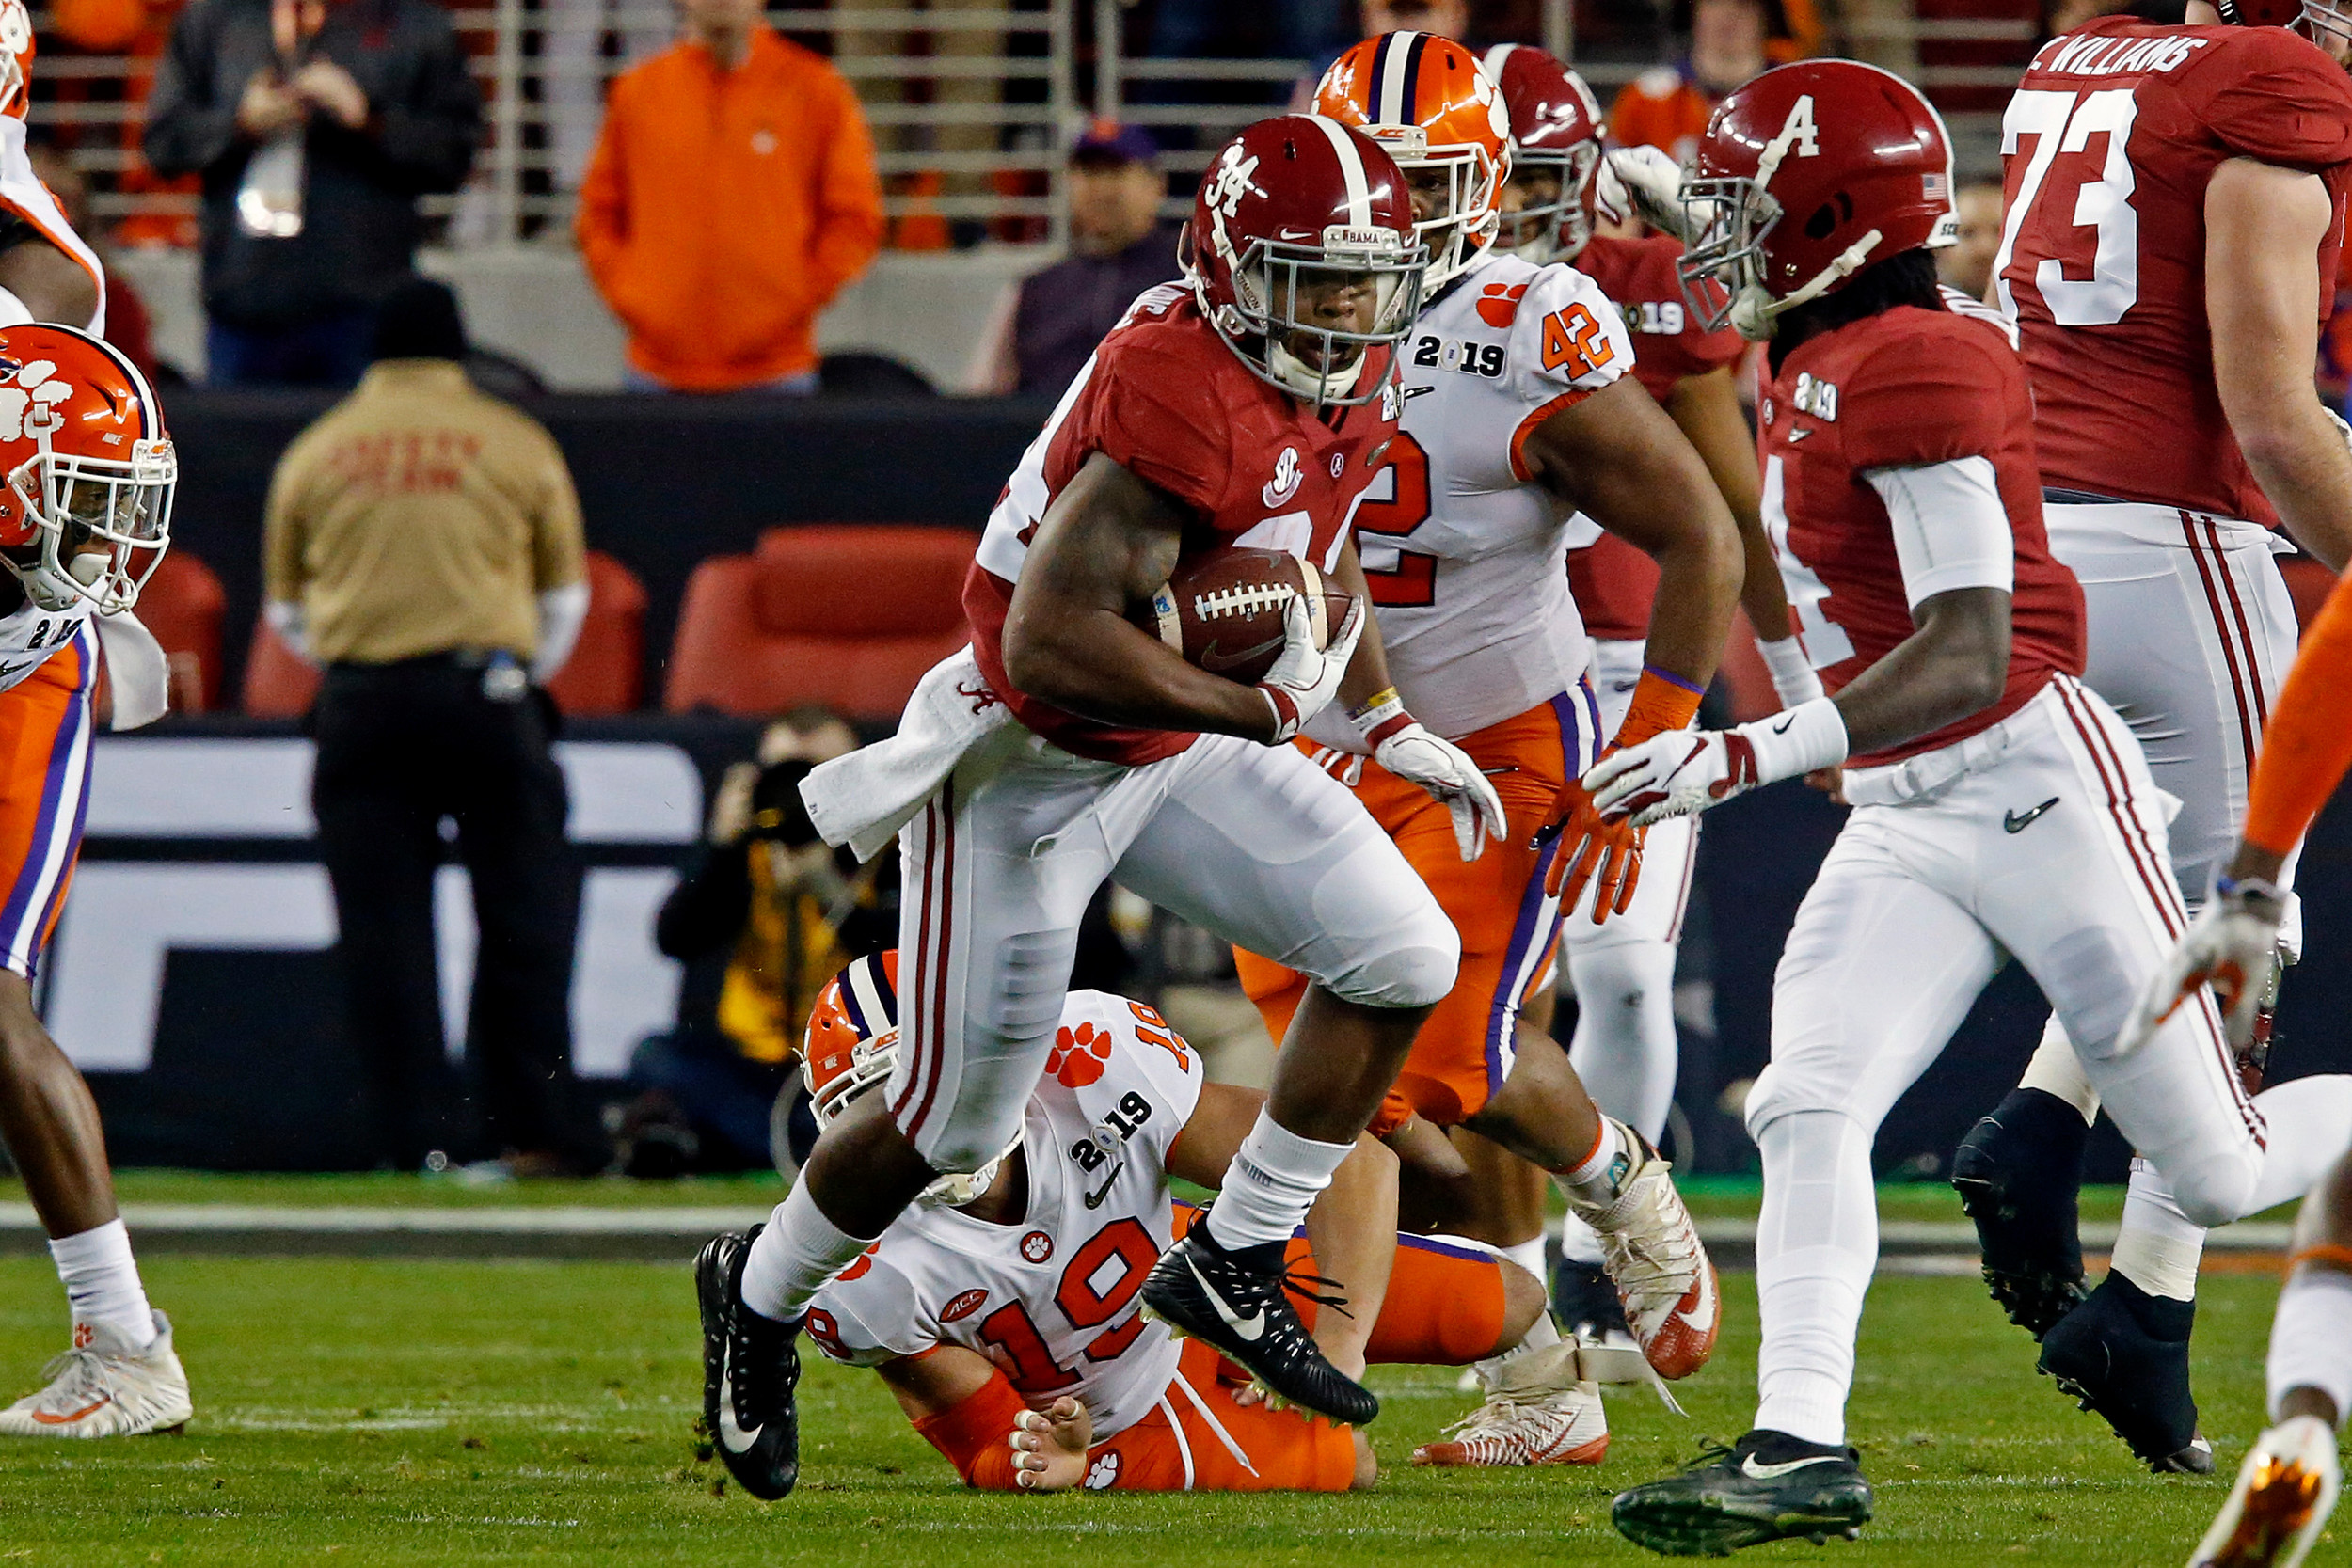 Alabama running back Damien Harris (34) rushes during the NCAA college football national championship game between Clemson University and the University of Alabama in Santa Clara, CA. Credit: Jason Clark / Daily Mountain Eagle